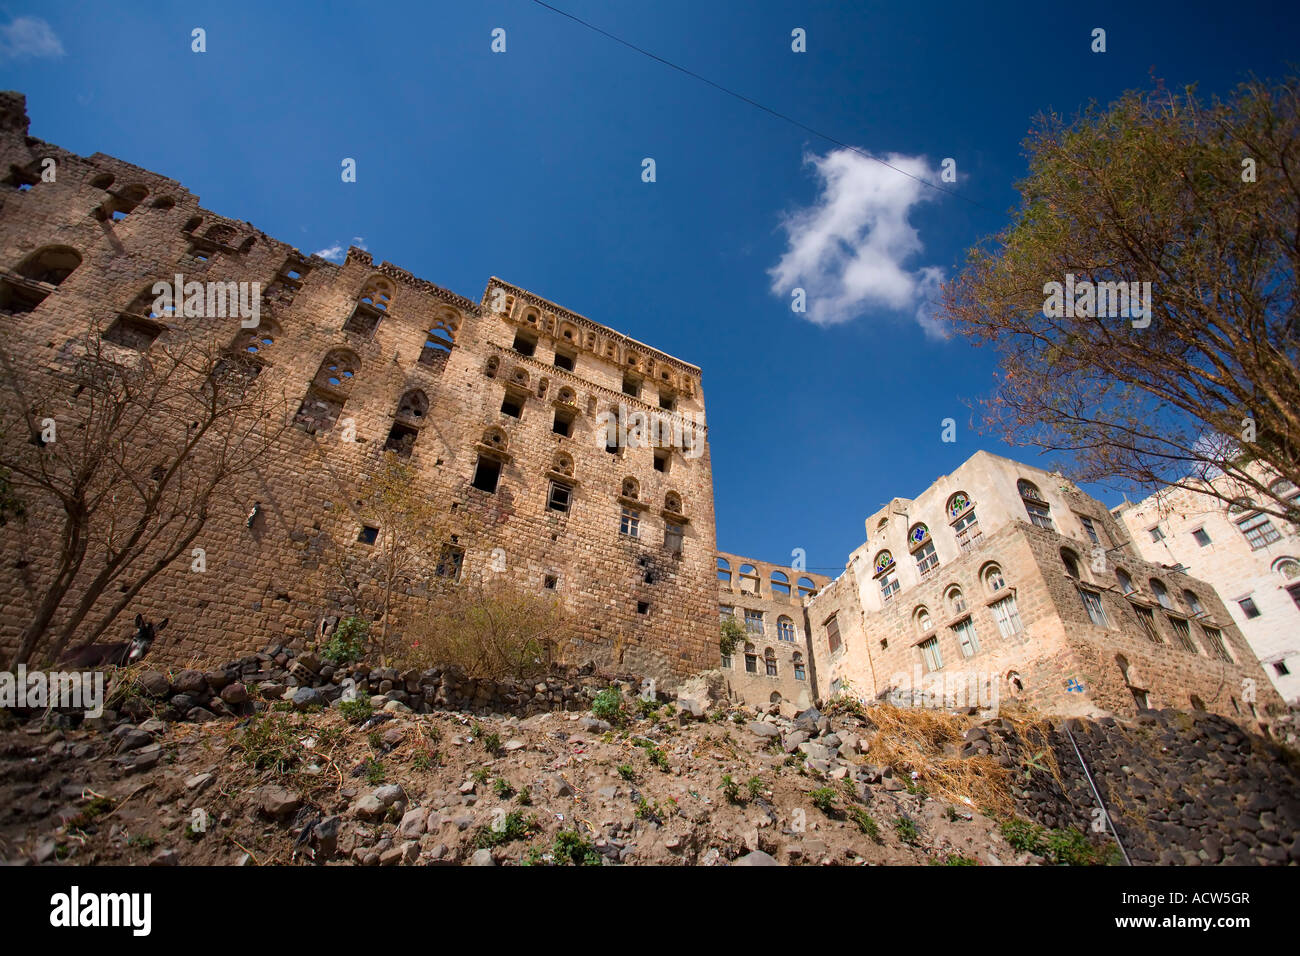 The ruins of the Former Palace of Queen Arwa Jibla near Taizz Yemen - Stock Image